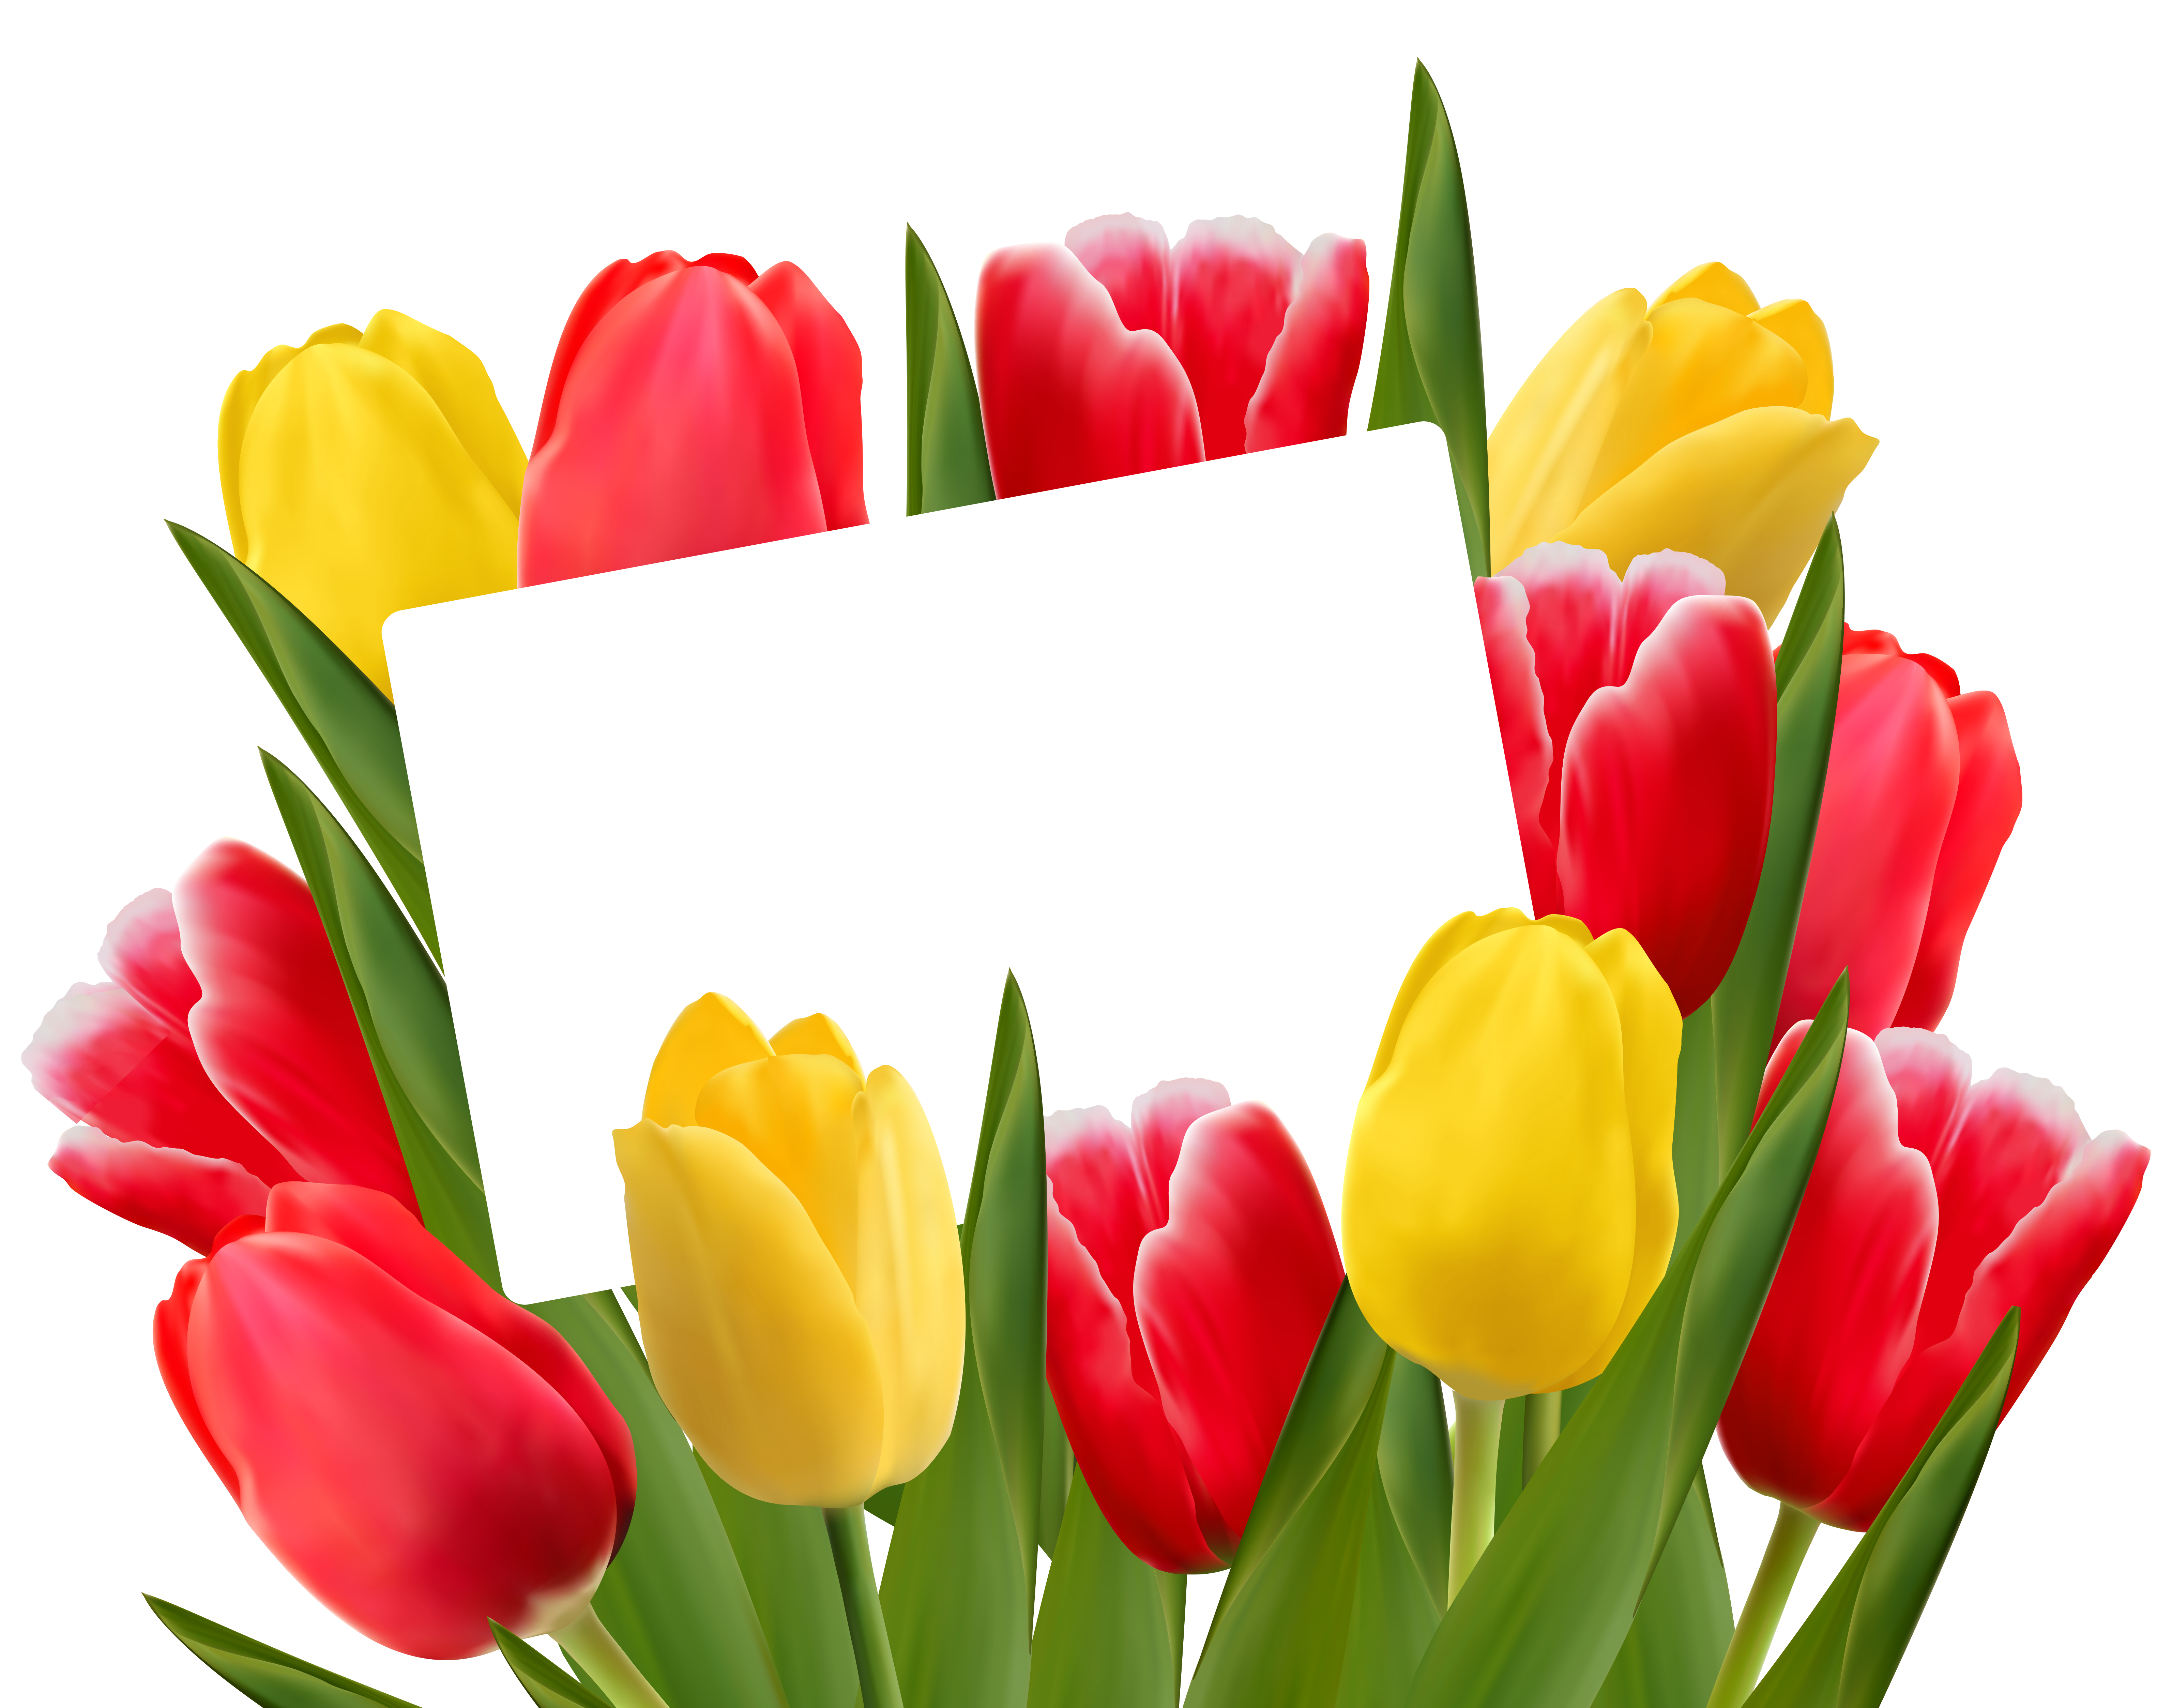 Frame clipart tulip Clipart Red Yellow full View